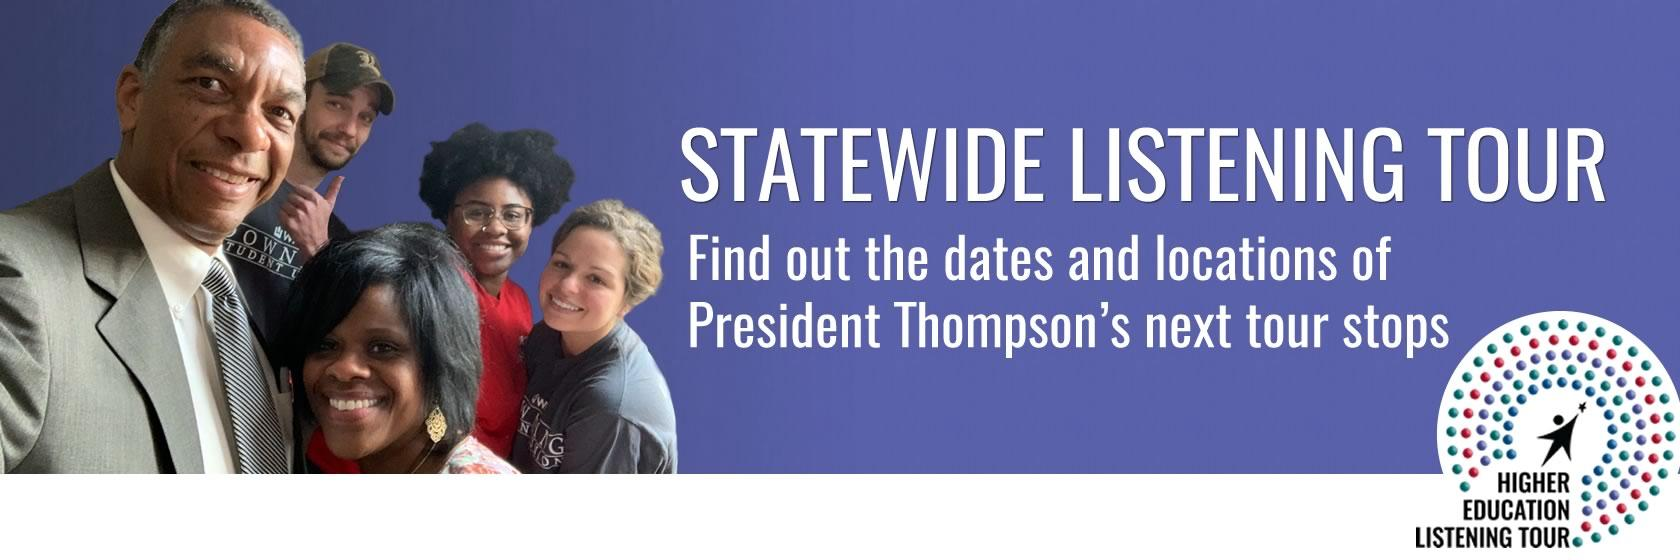 Find out President Thompson's next listening tour stops.